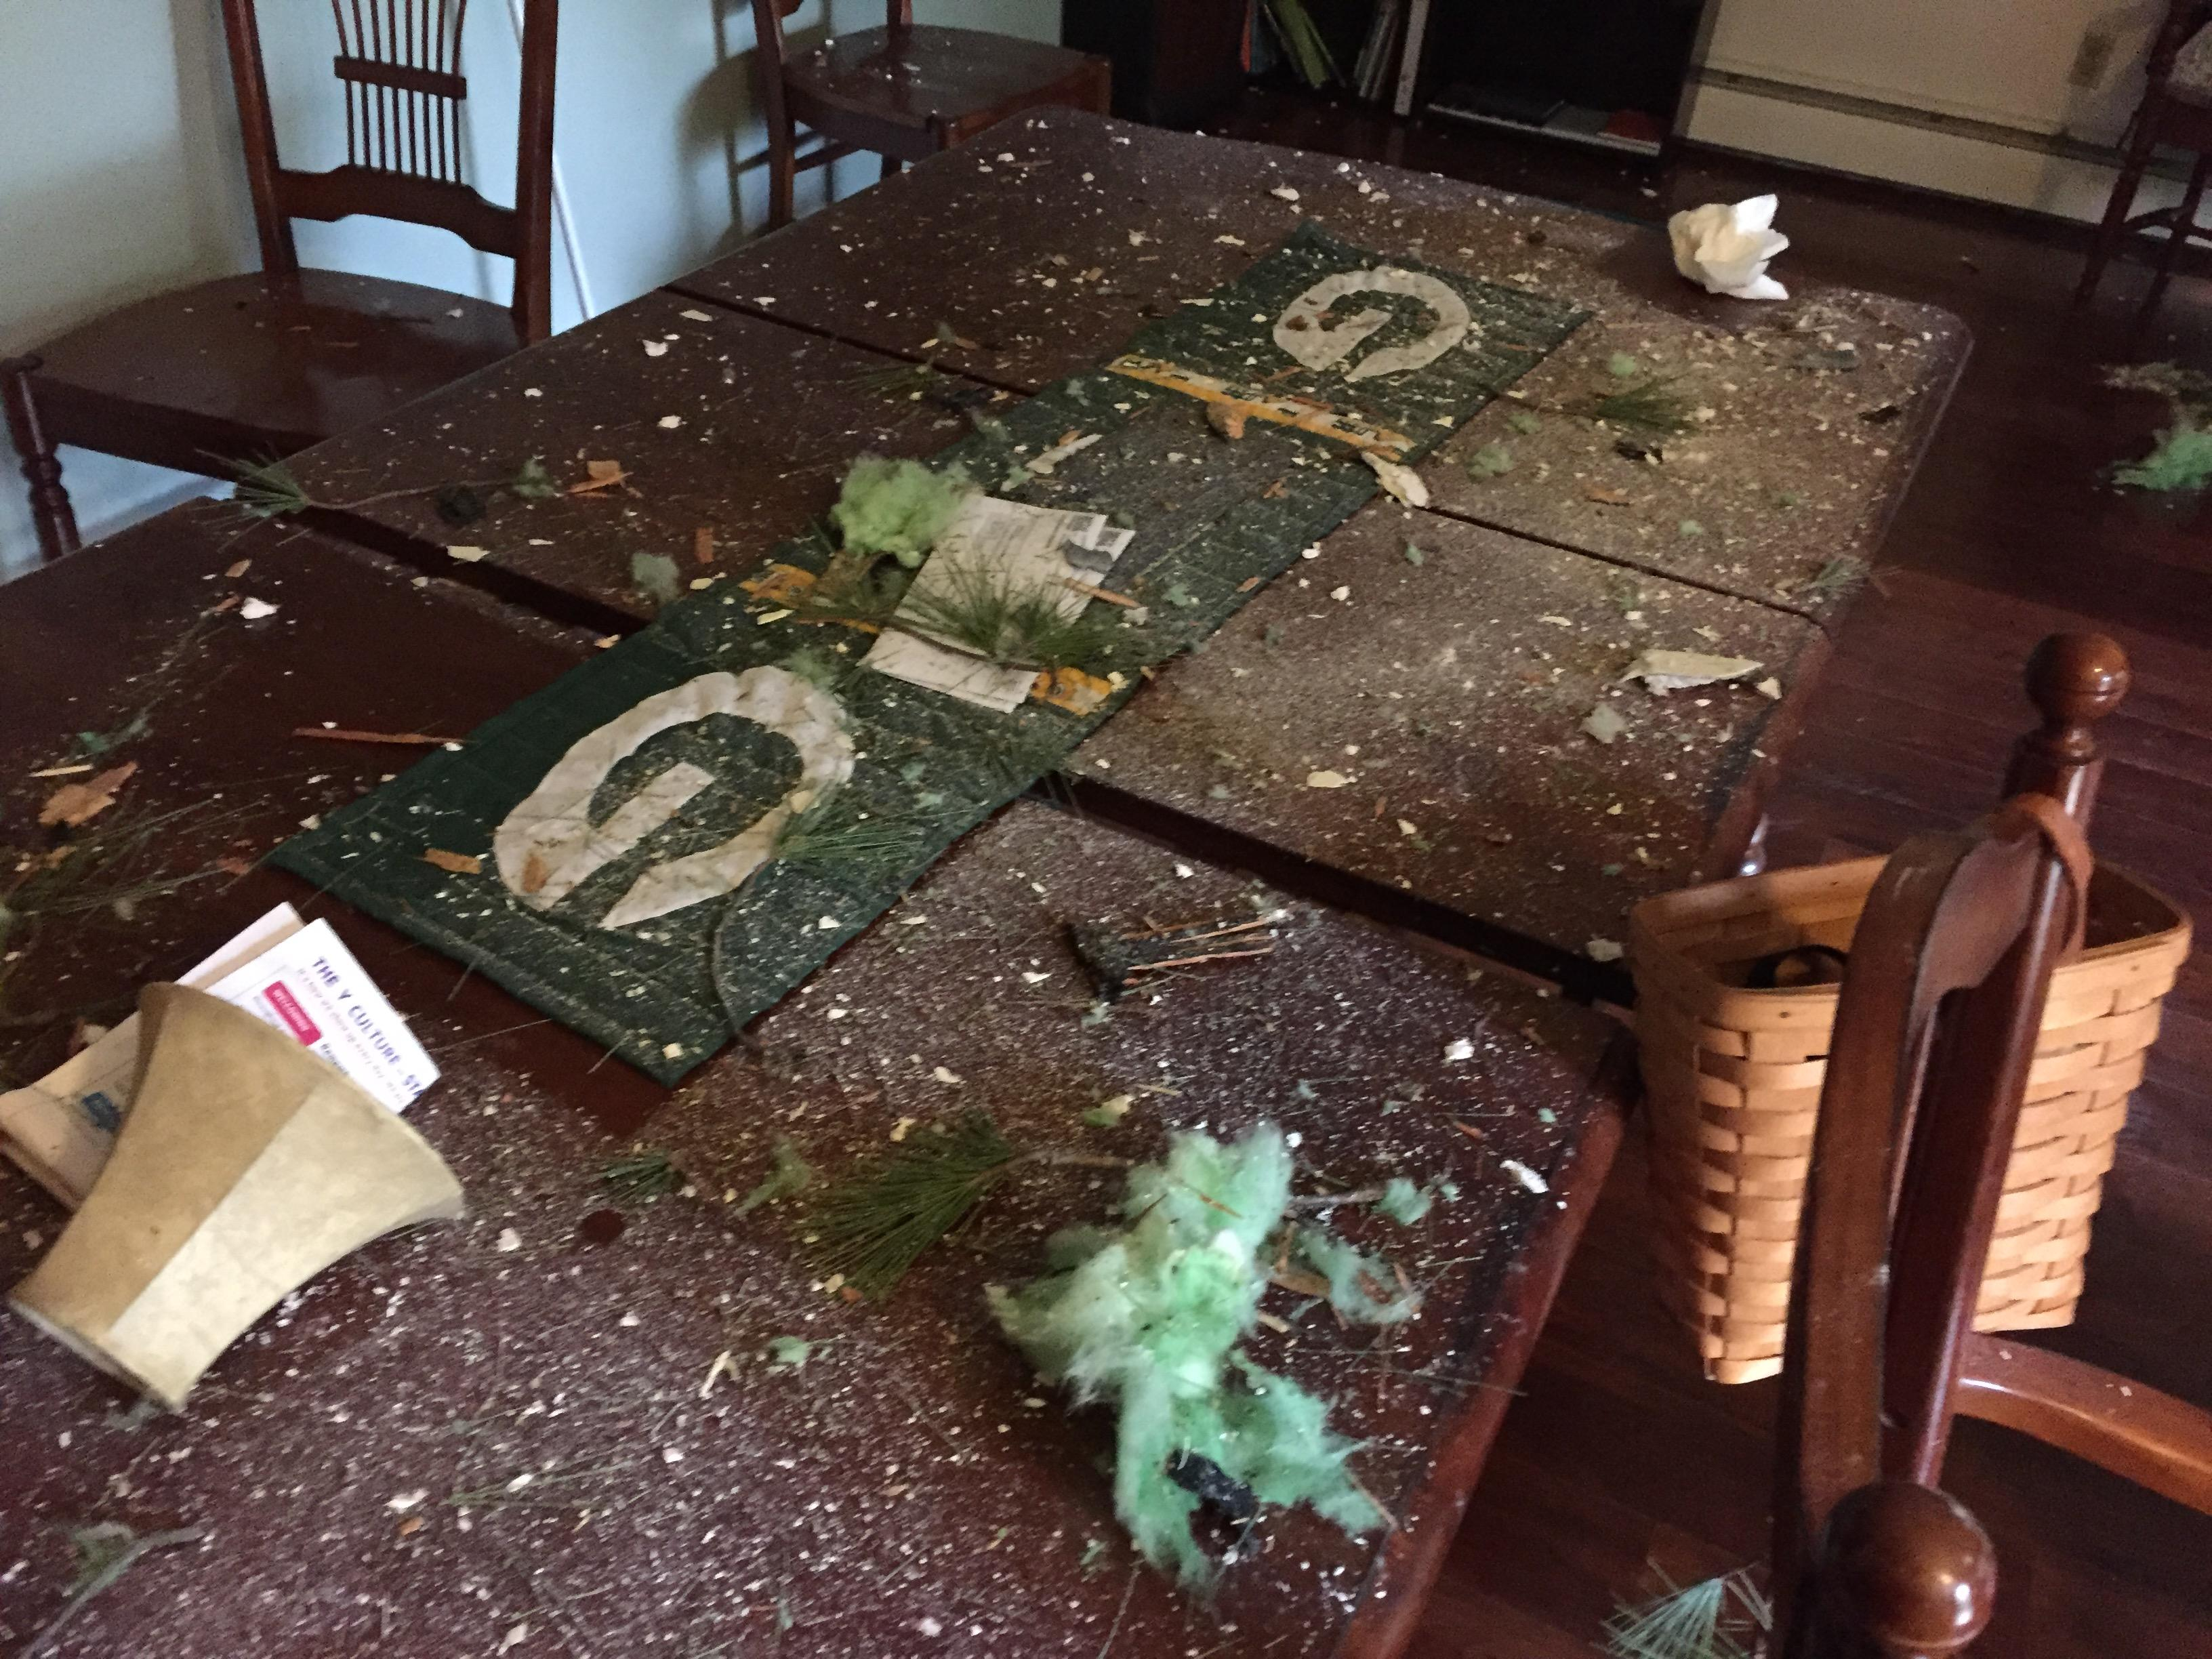 Debris after a tree came through the home.                       (Courtesy: Katy Kramer) May 18, 2017.